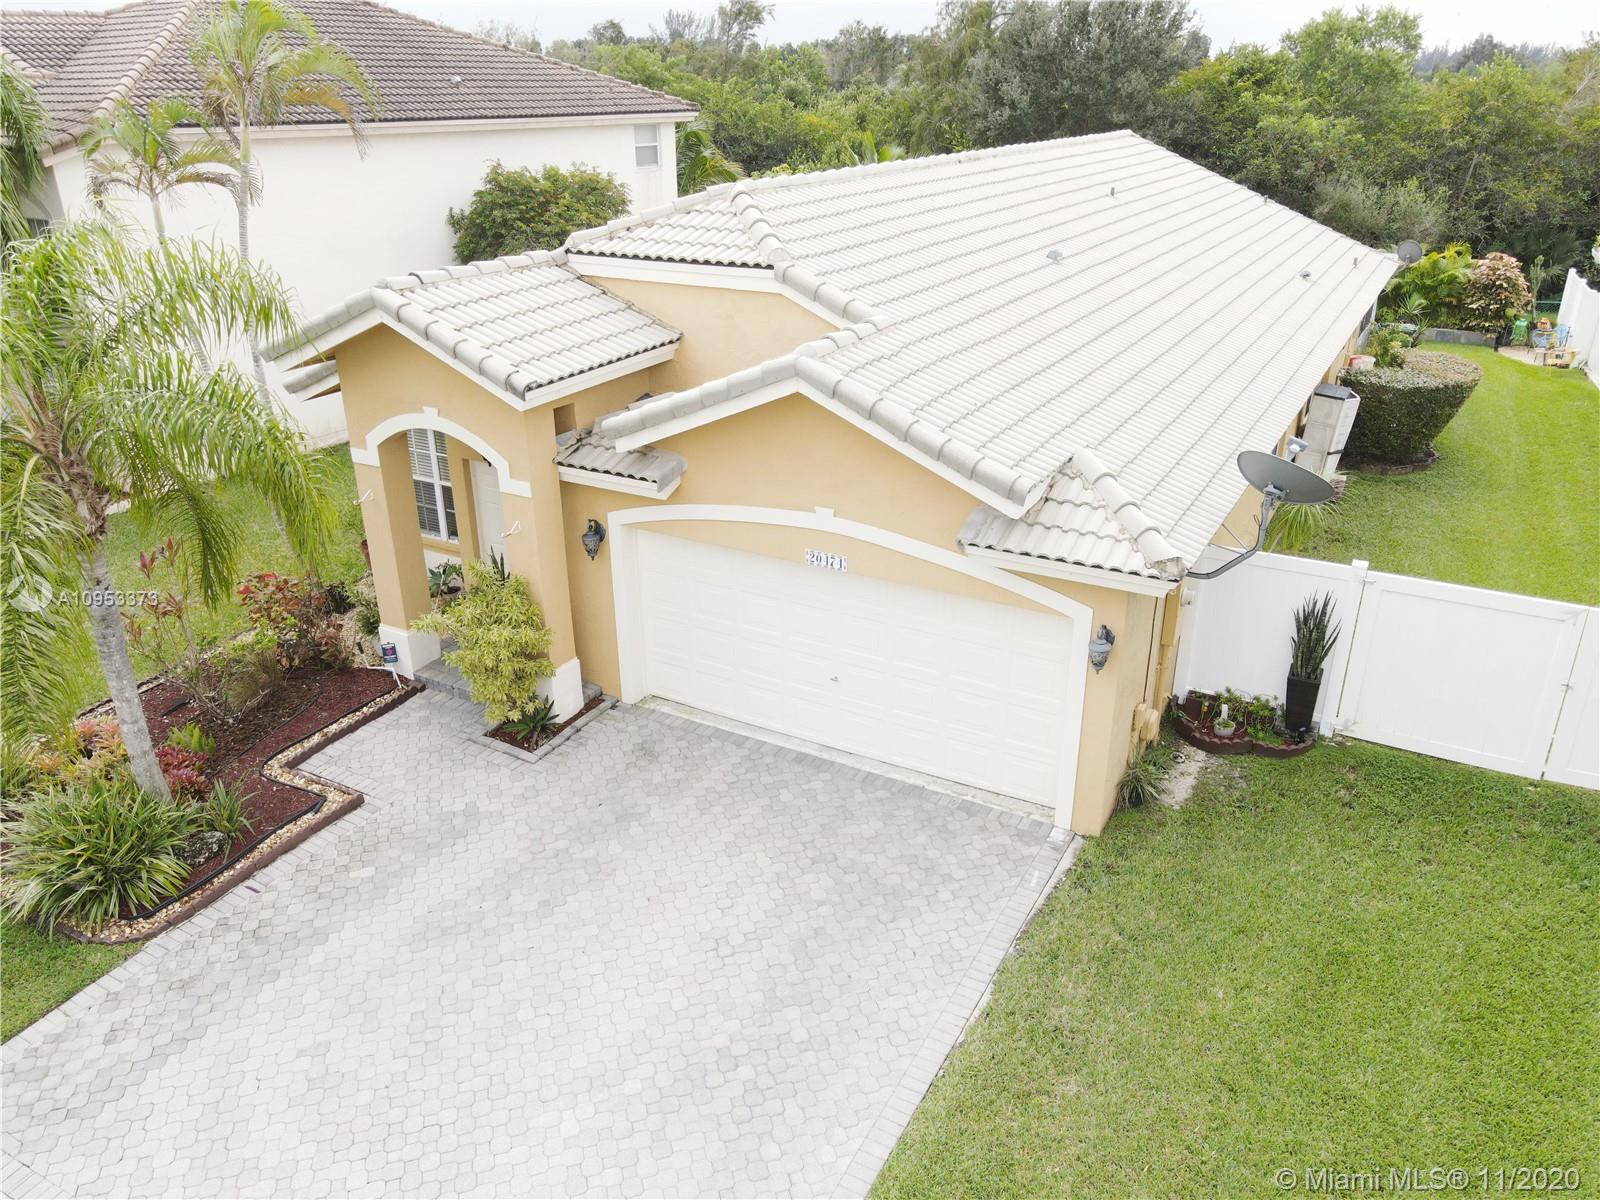 This Beautiful 3 Bedroom 2 bathroom House is located in a quiet neighborhood, on the west side of Pembroke Pines. Right off of Okeechobee road. Perfect first time family home, close to shopping centers, schools, supermarkets, and main roads. This home offers relaxed comfort inside and out. With an outside screened patio area great for entertaining .